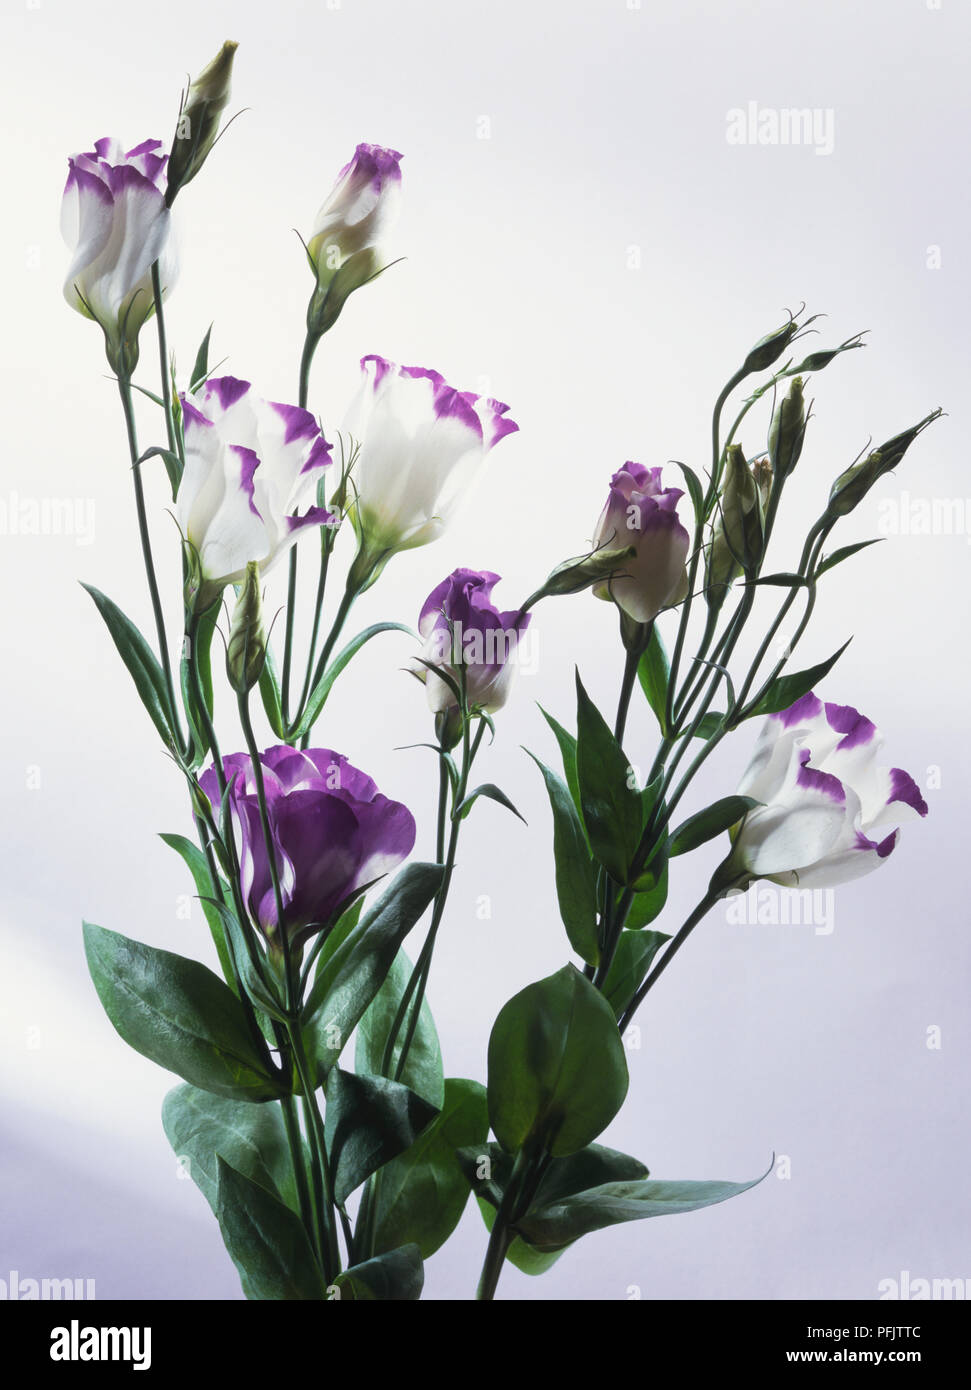 Eustoma grandiflorum, Texan Bluebell or Prairie Gentian flowers - Stock Image